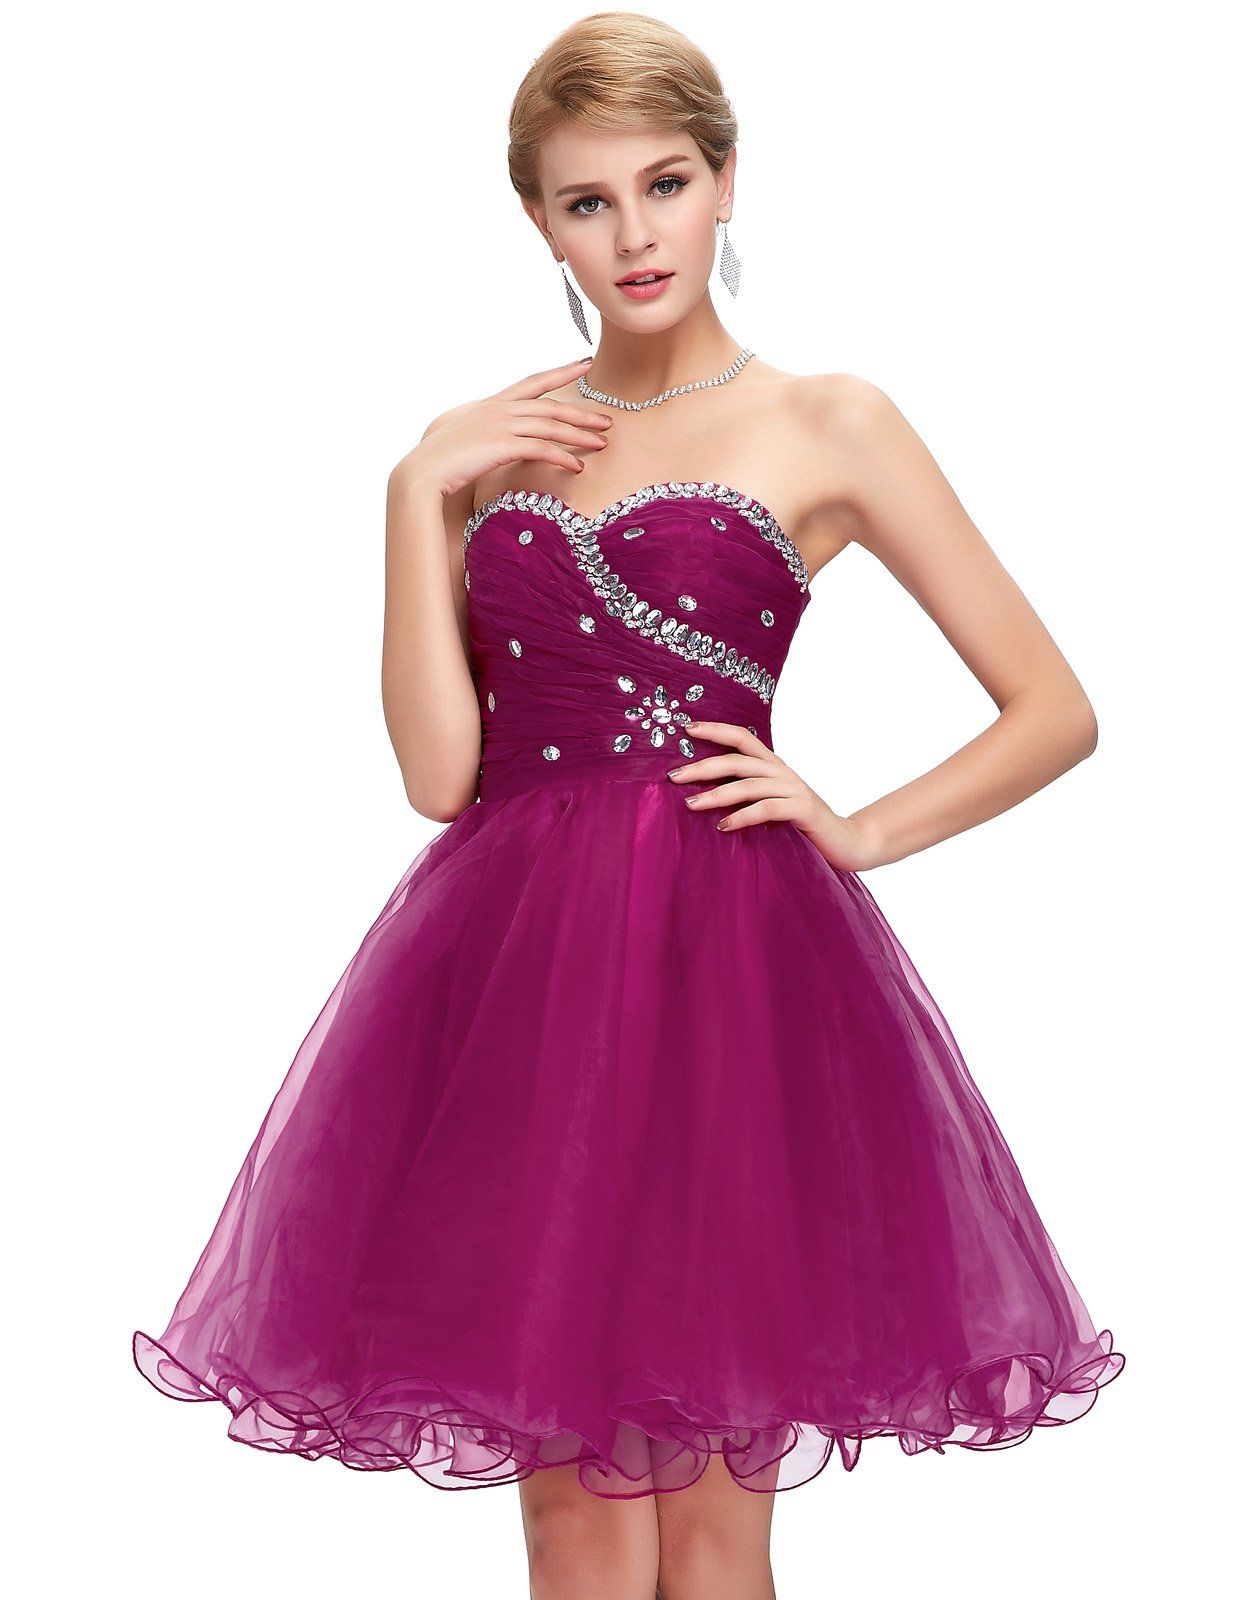 Sweetheart voile bridesmaid dress short prom gown cl usa